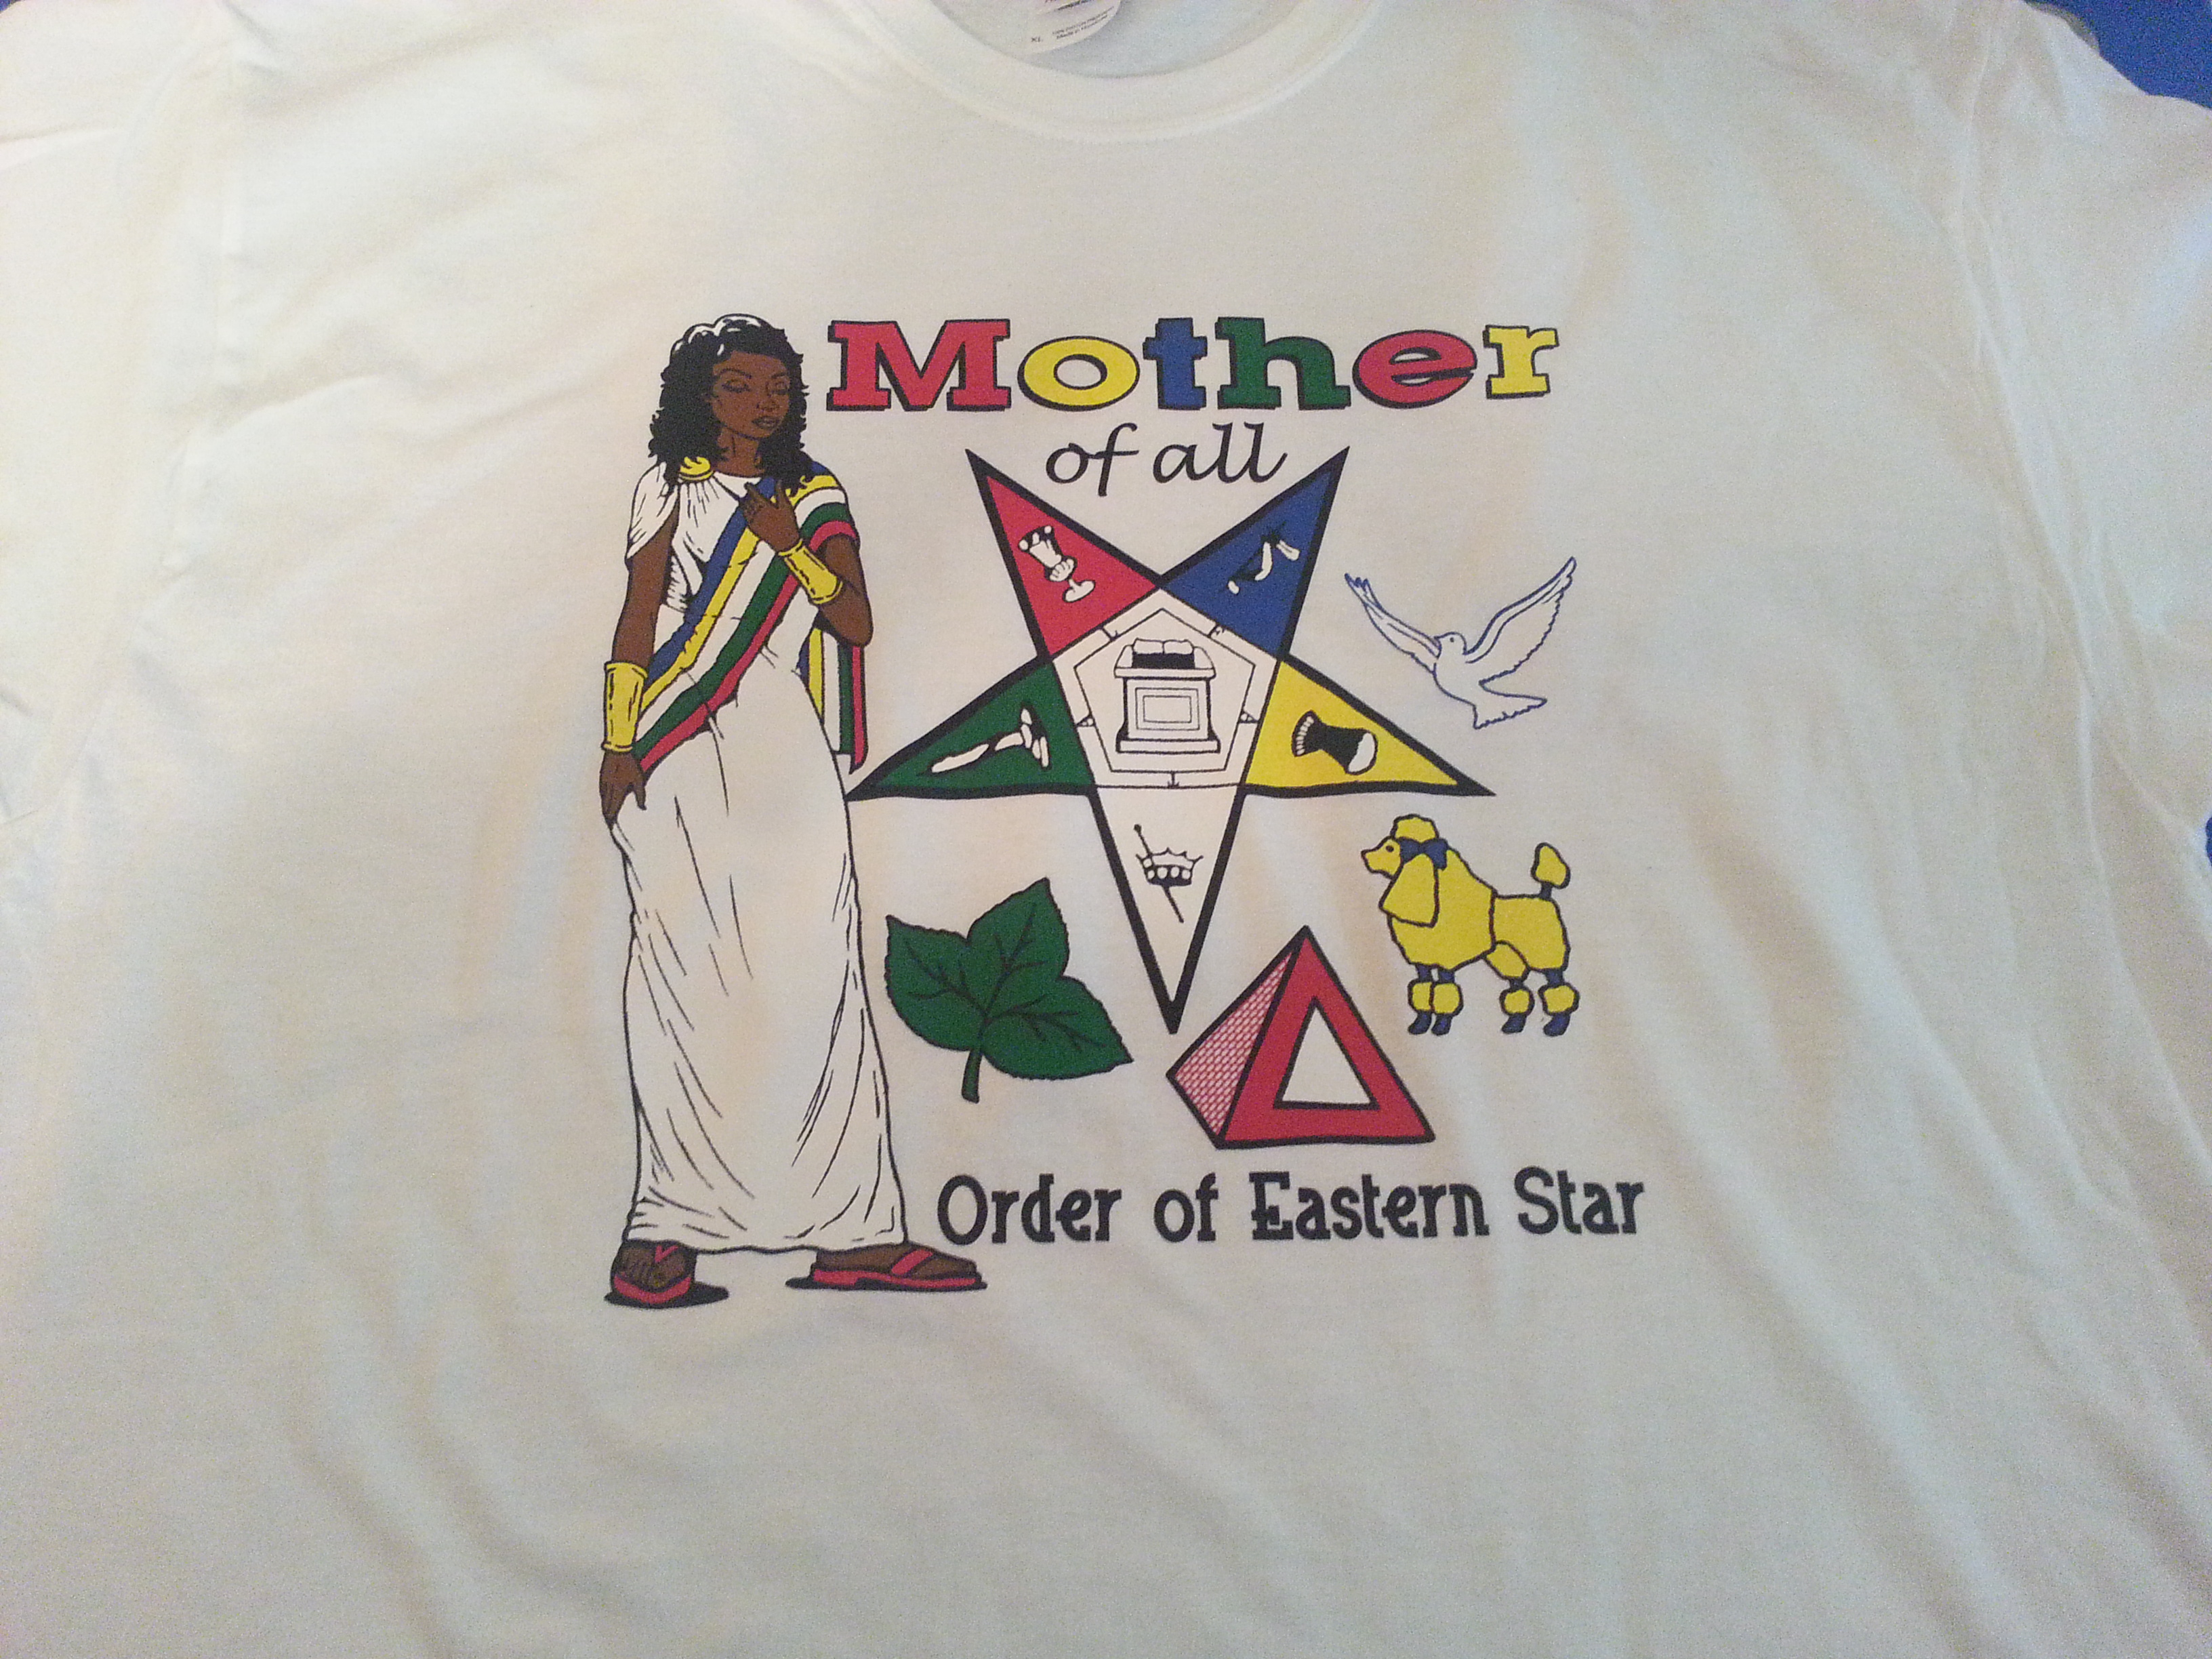 667f1ceb OES - Order of Eastern Star Mother of All White T-Shirt on Storenvy